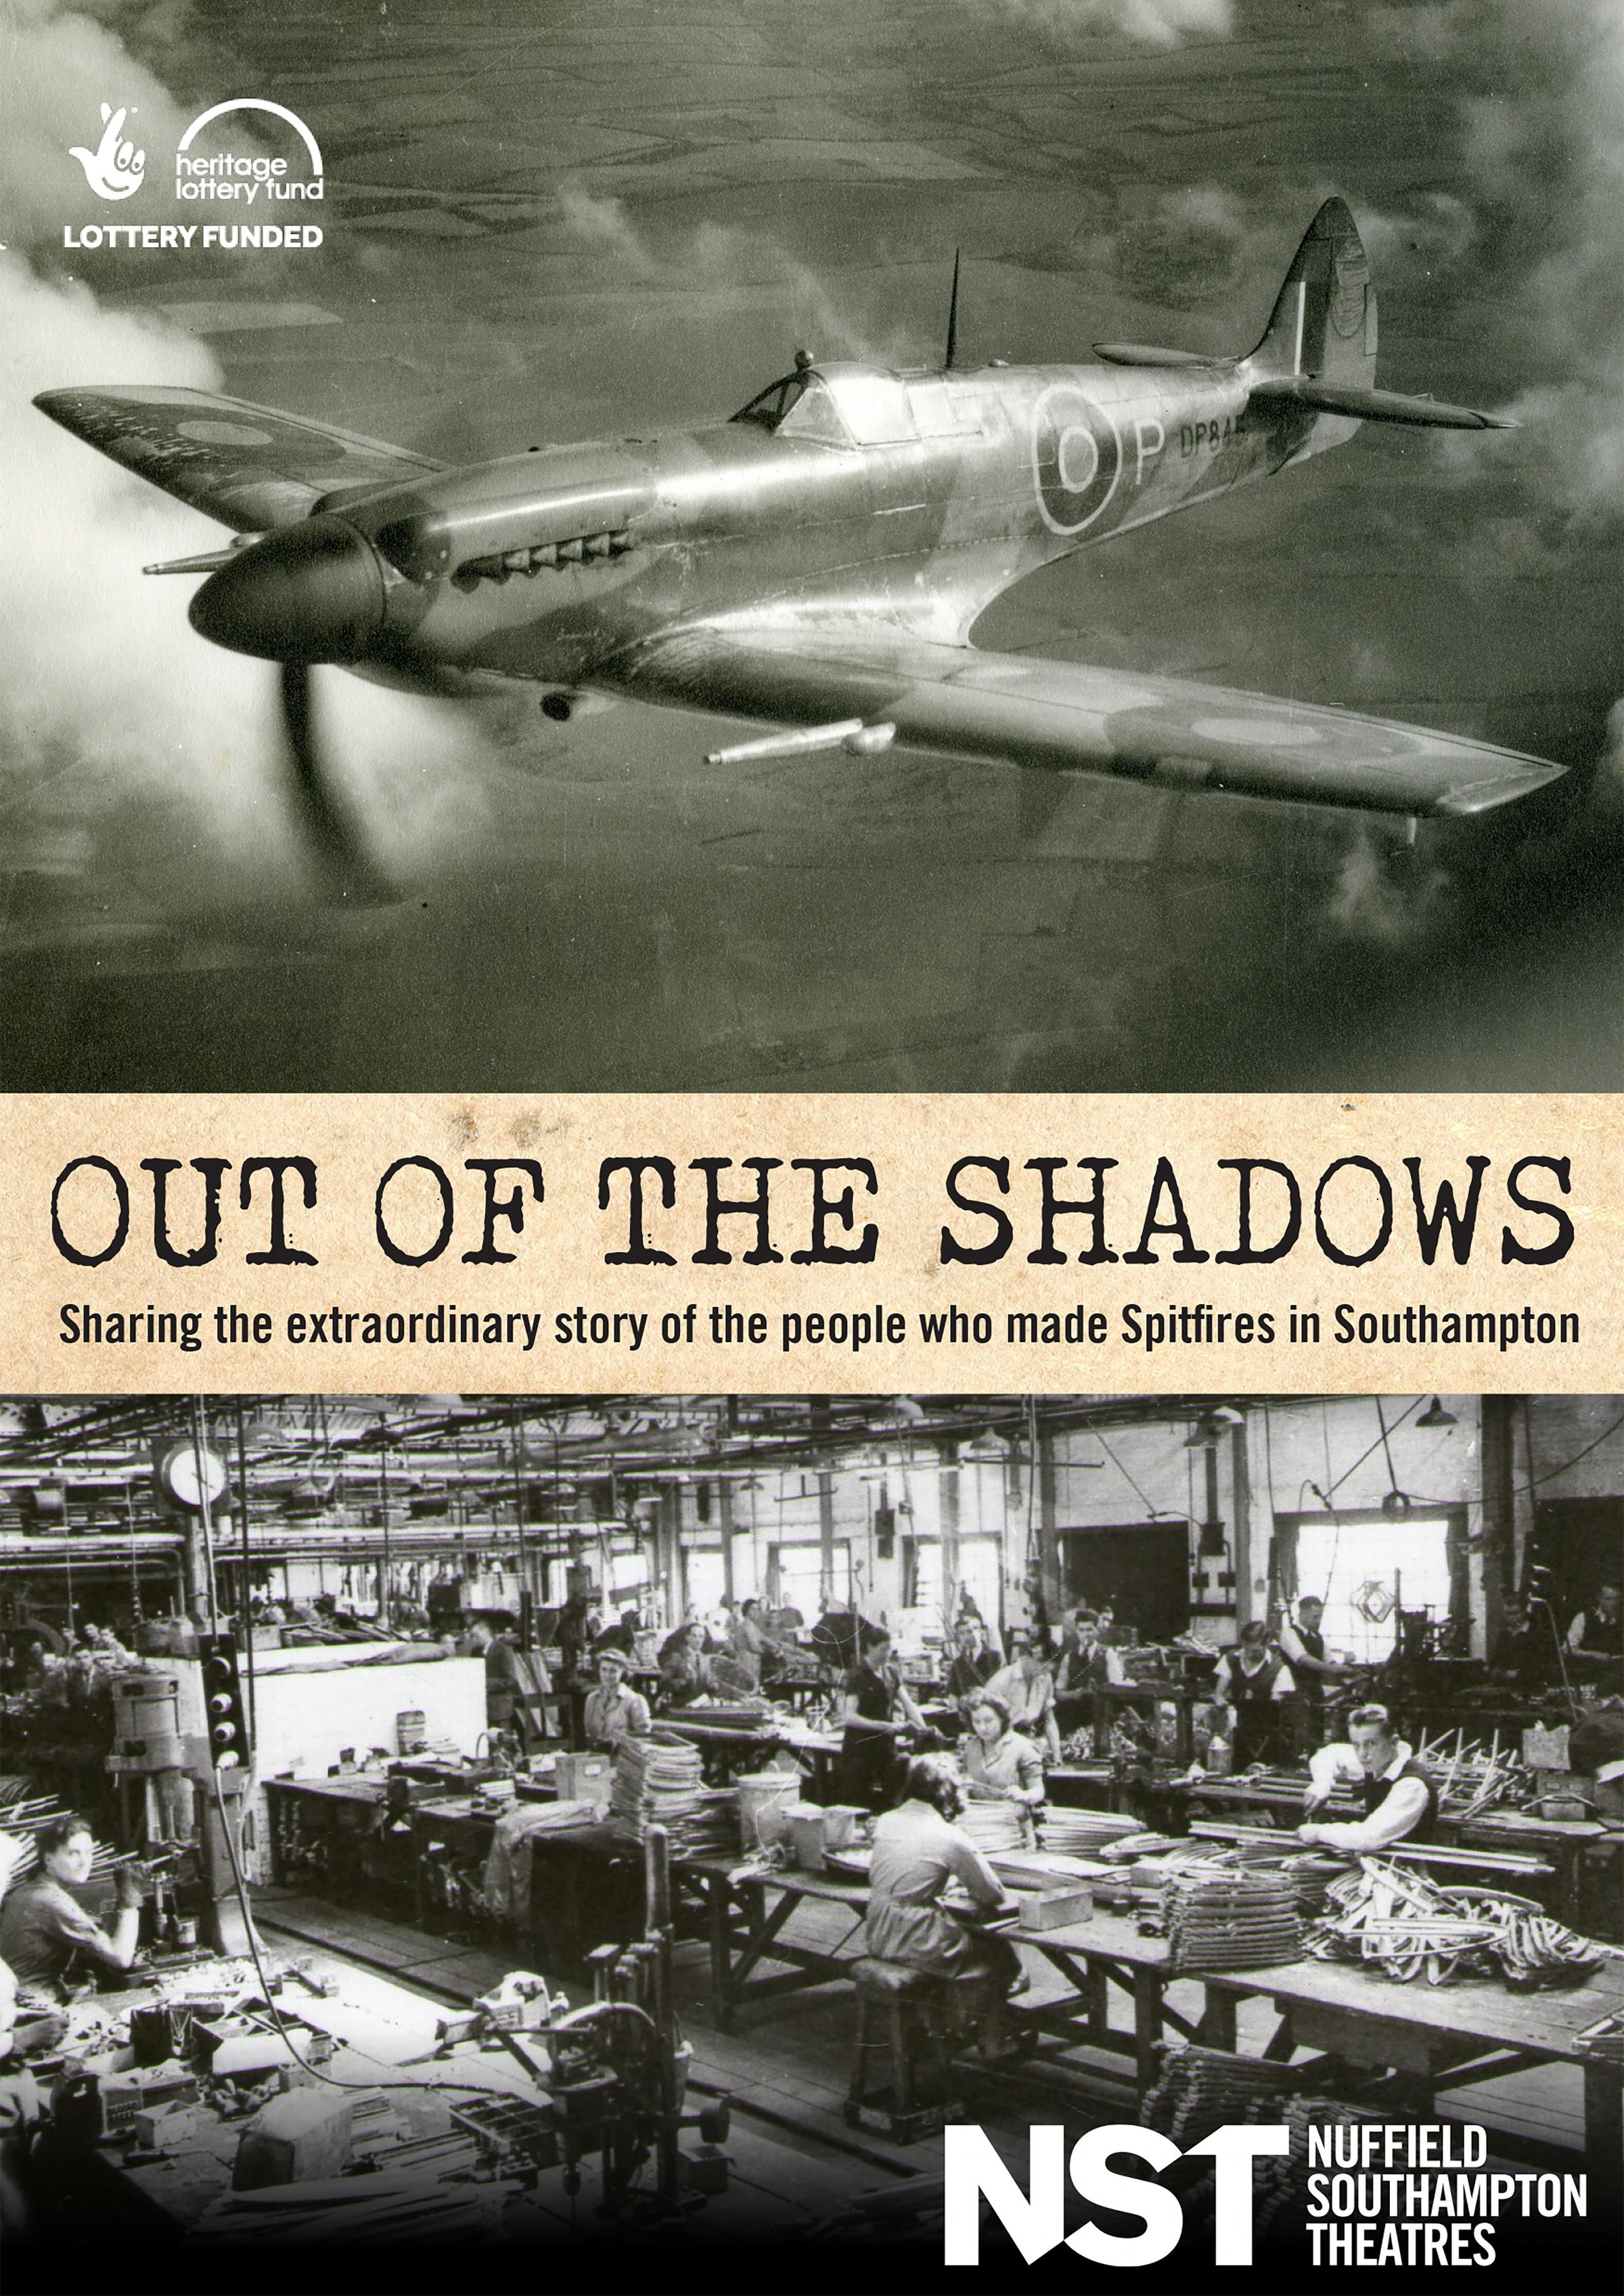 Out of the Shadows: Community Heritage Day